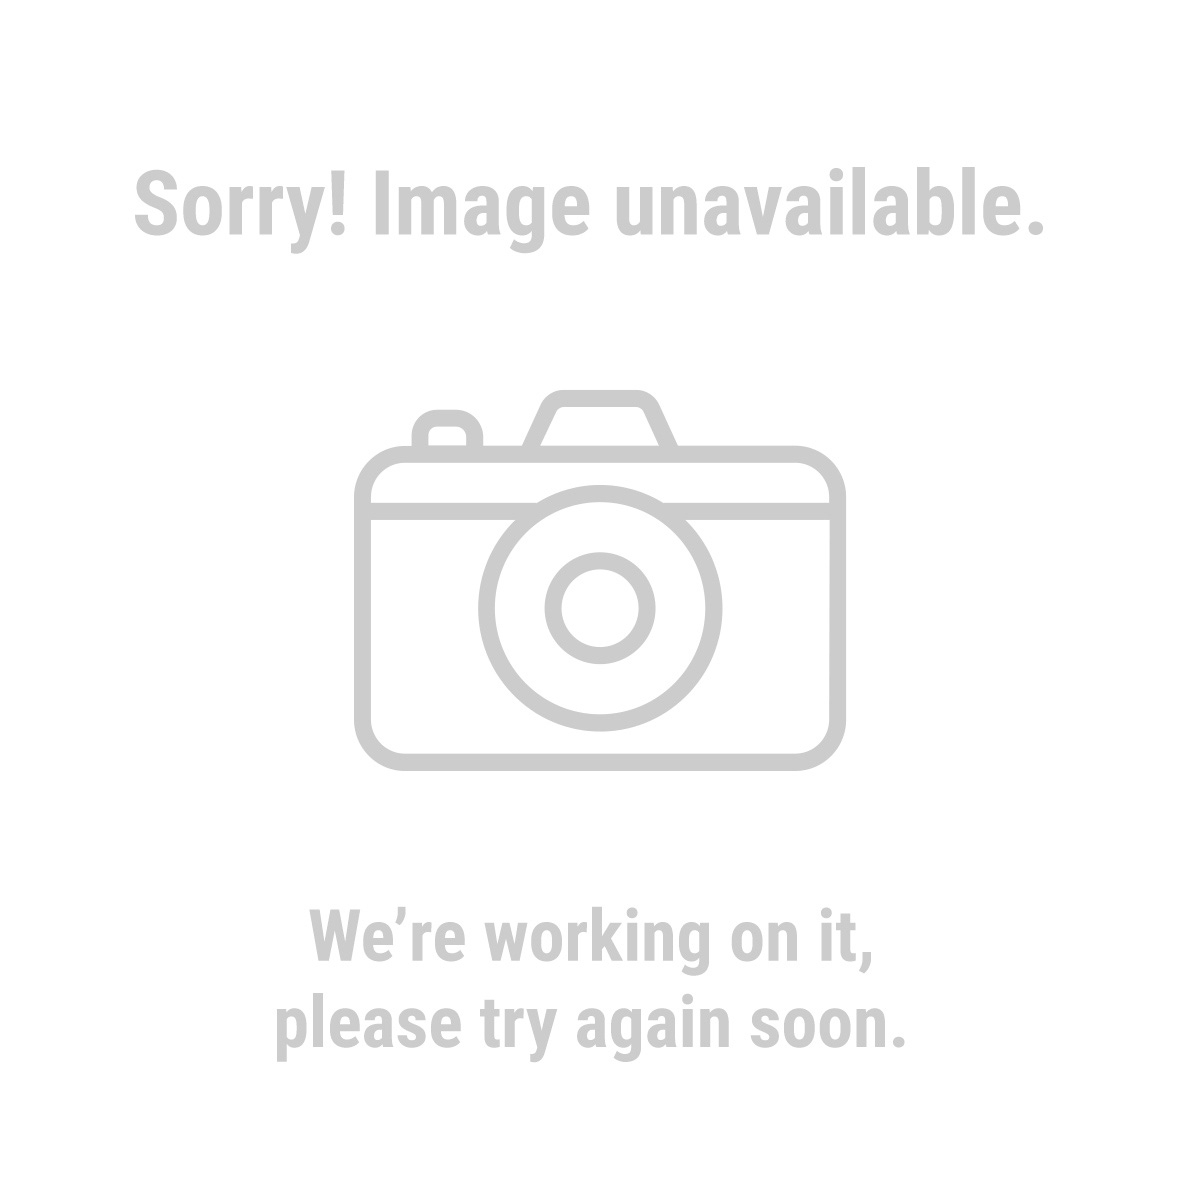 Harbor Freight 5 Drawer Tool Cart : Harbor freight tools that don t suck